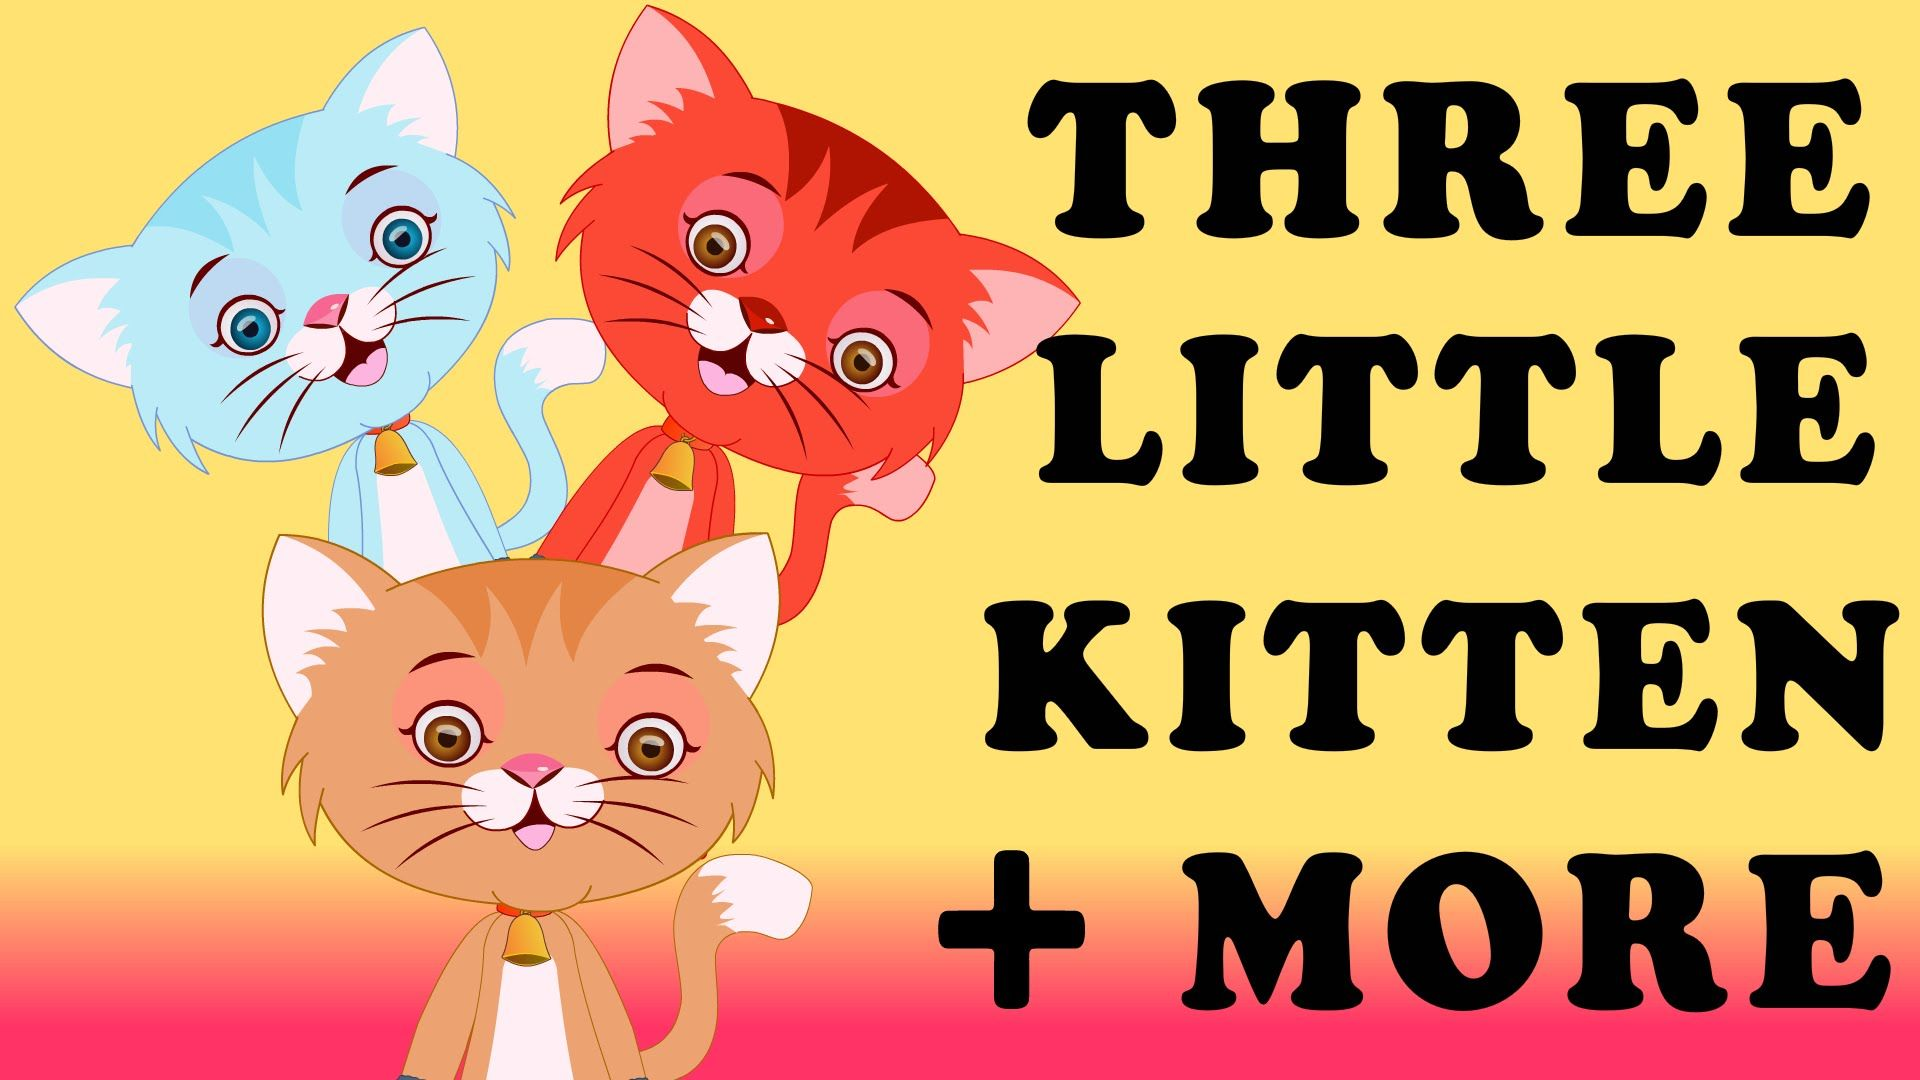 Sing Along To This Classic Folk Song Three Little Kittens Lyrics